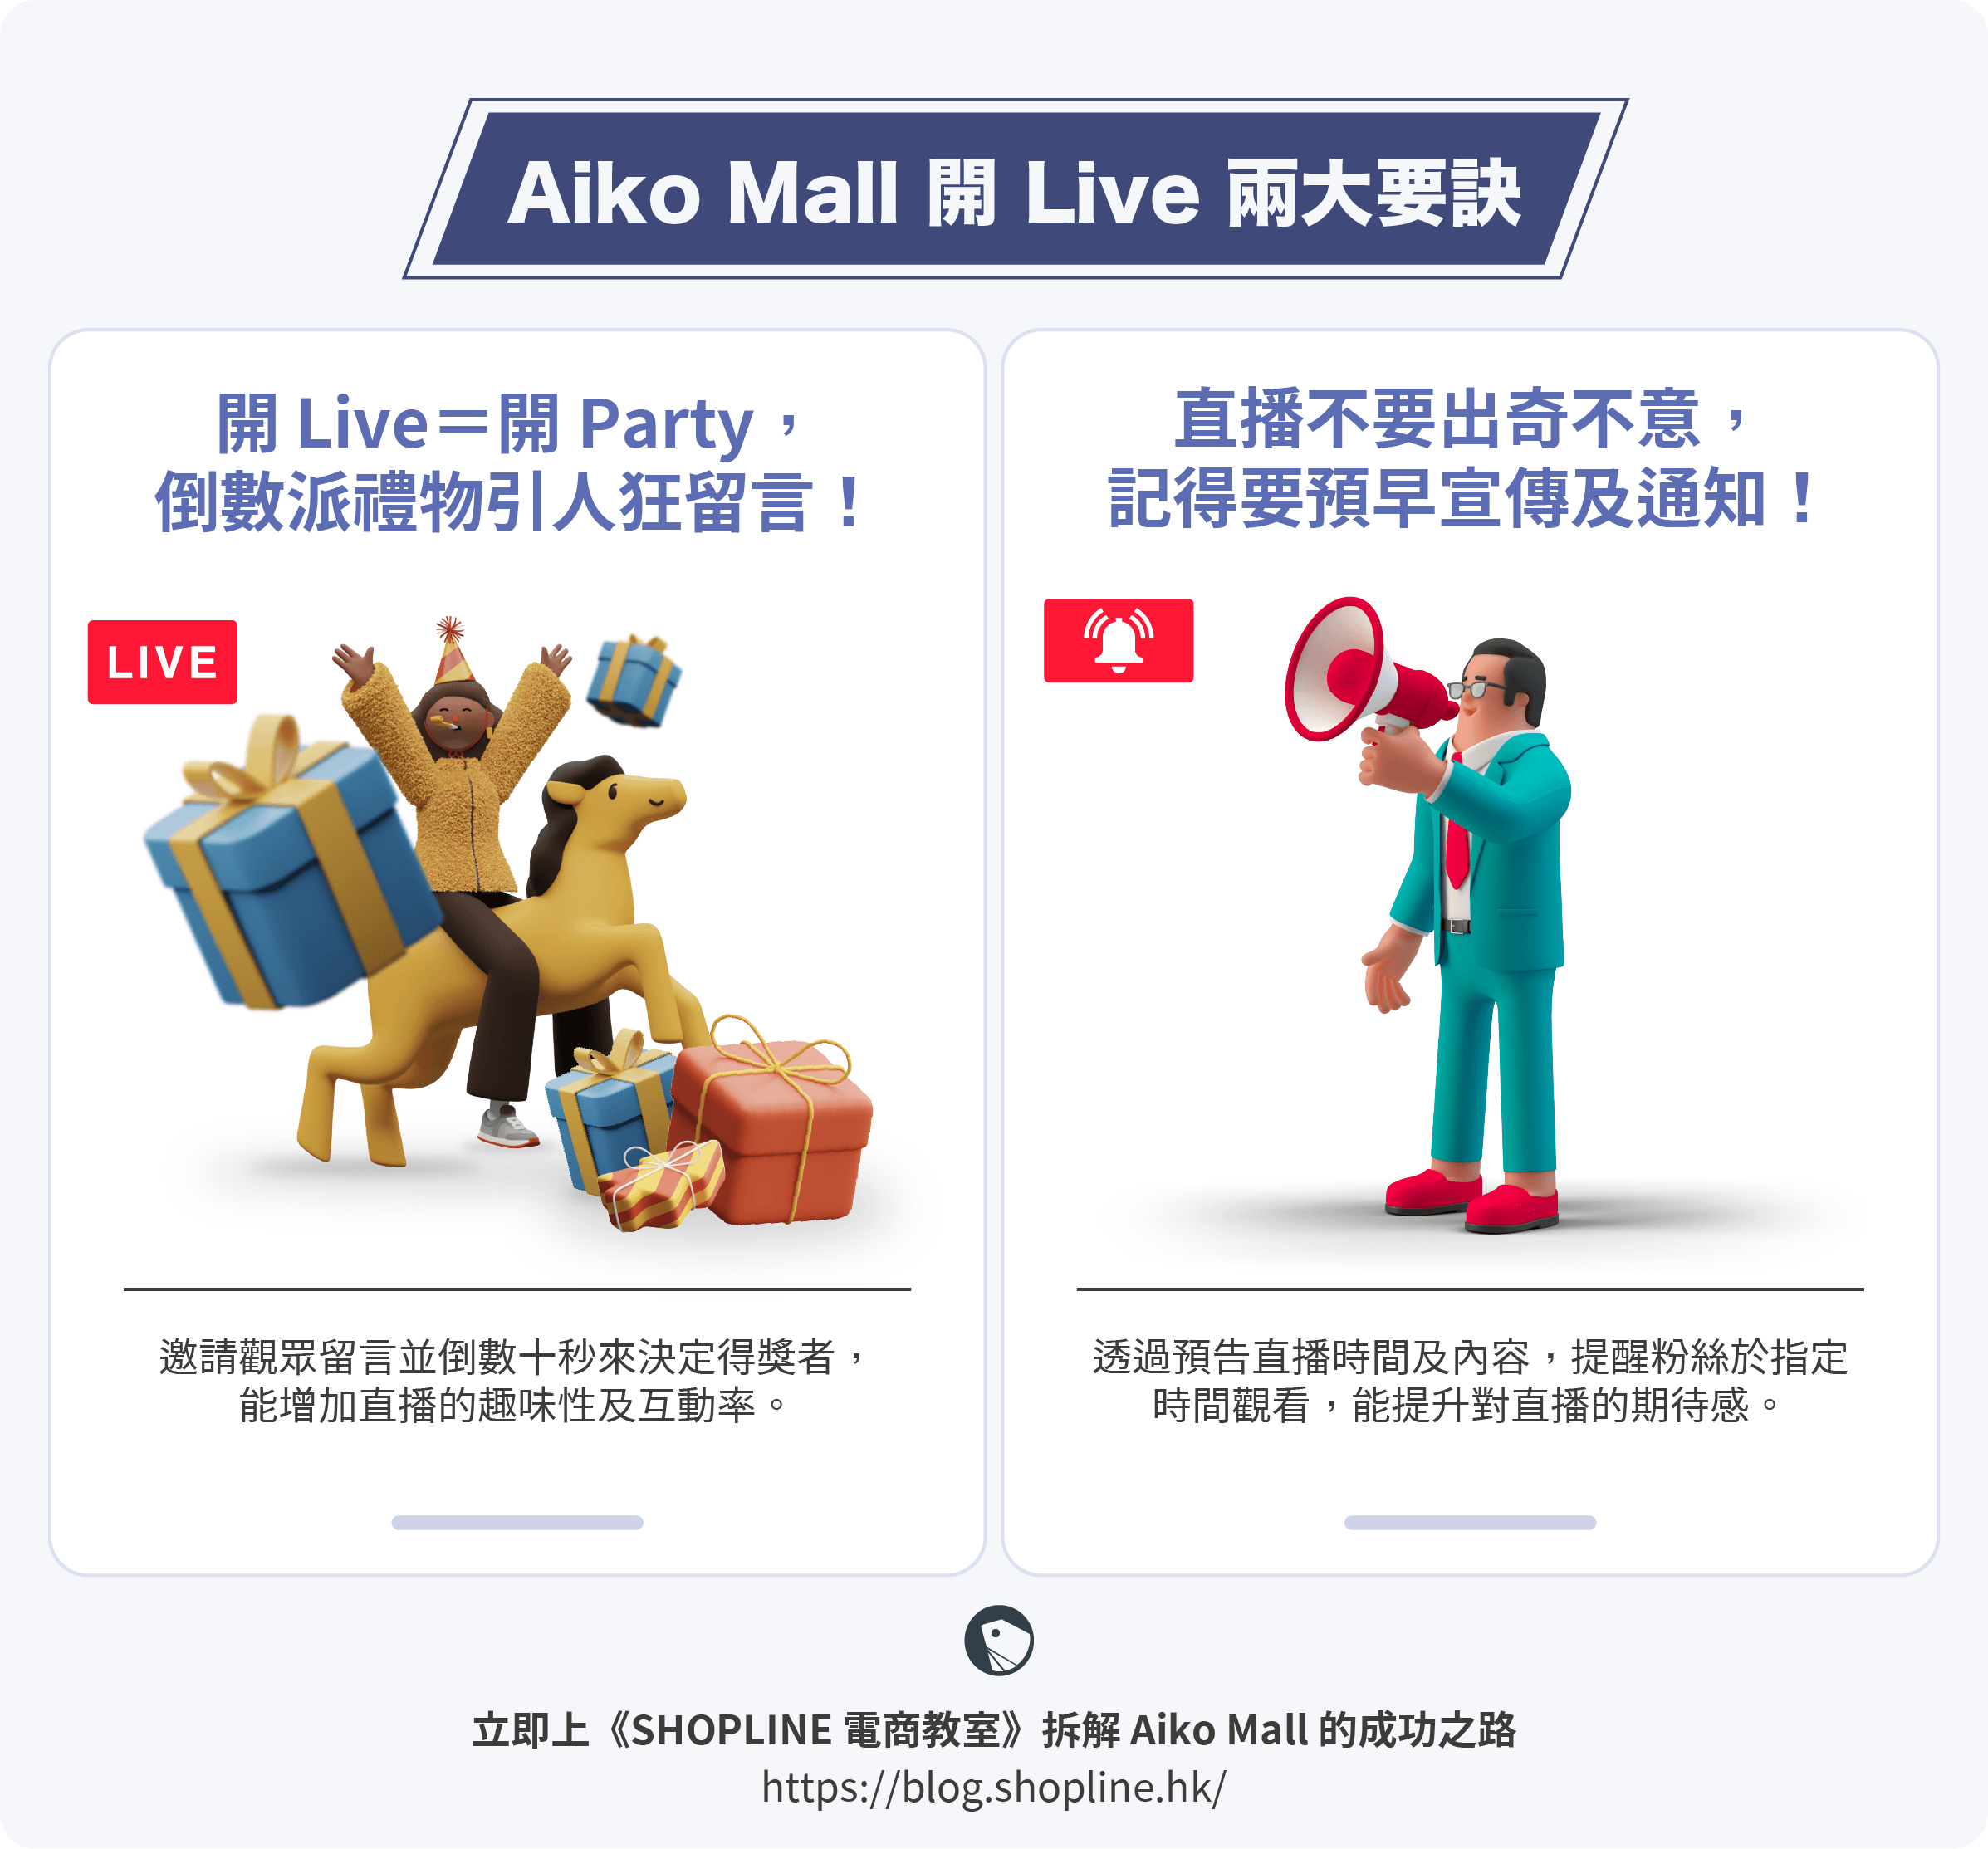 2 useful Live stream tips from Aiko Mall